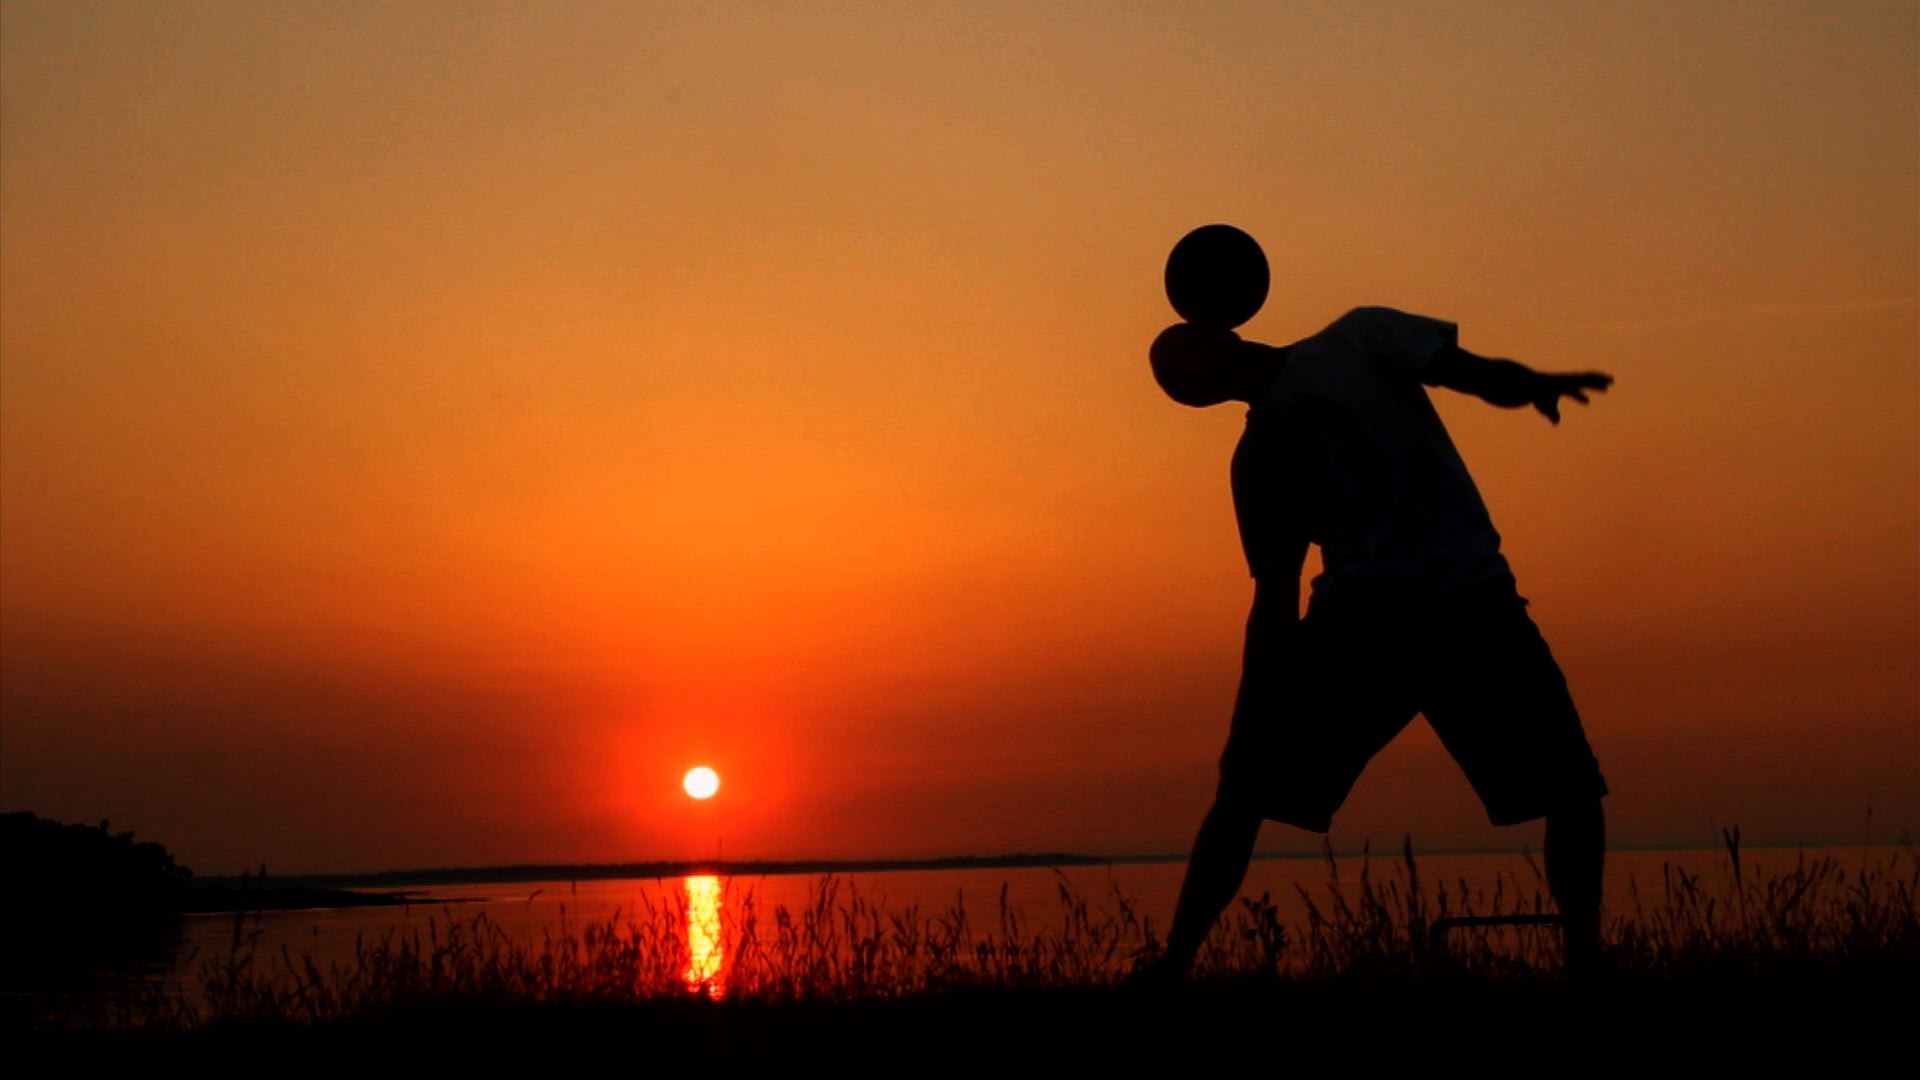 Sunset freestyle football freestyle soccer beyond football